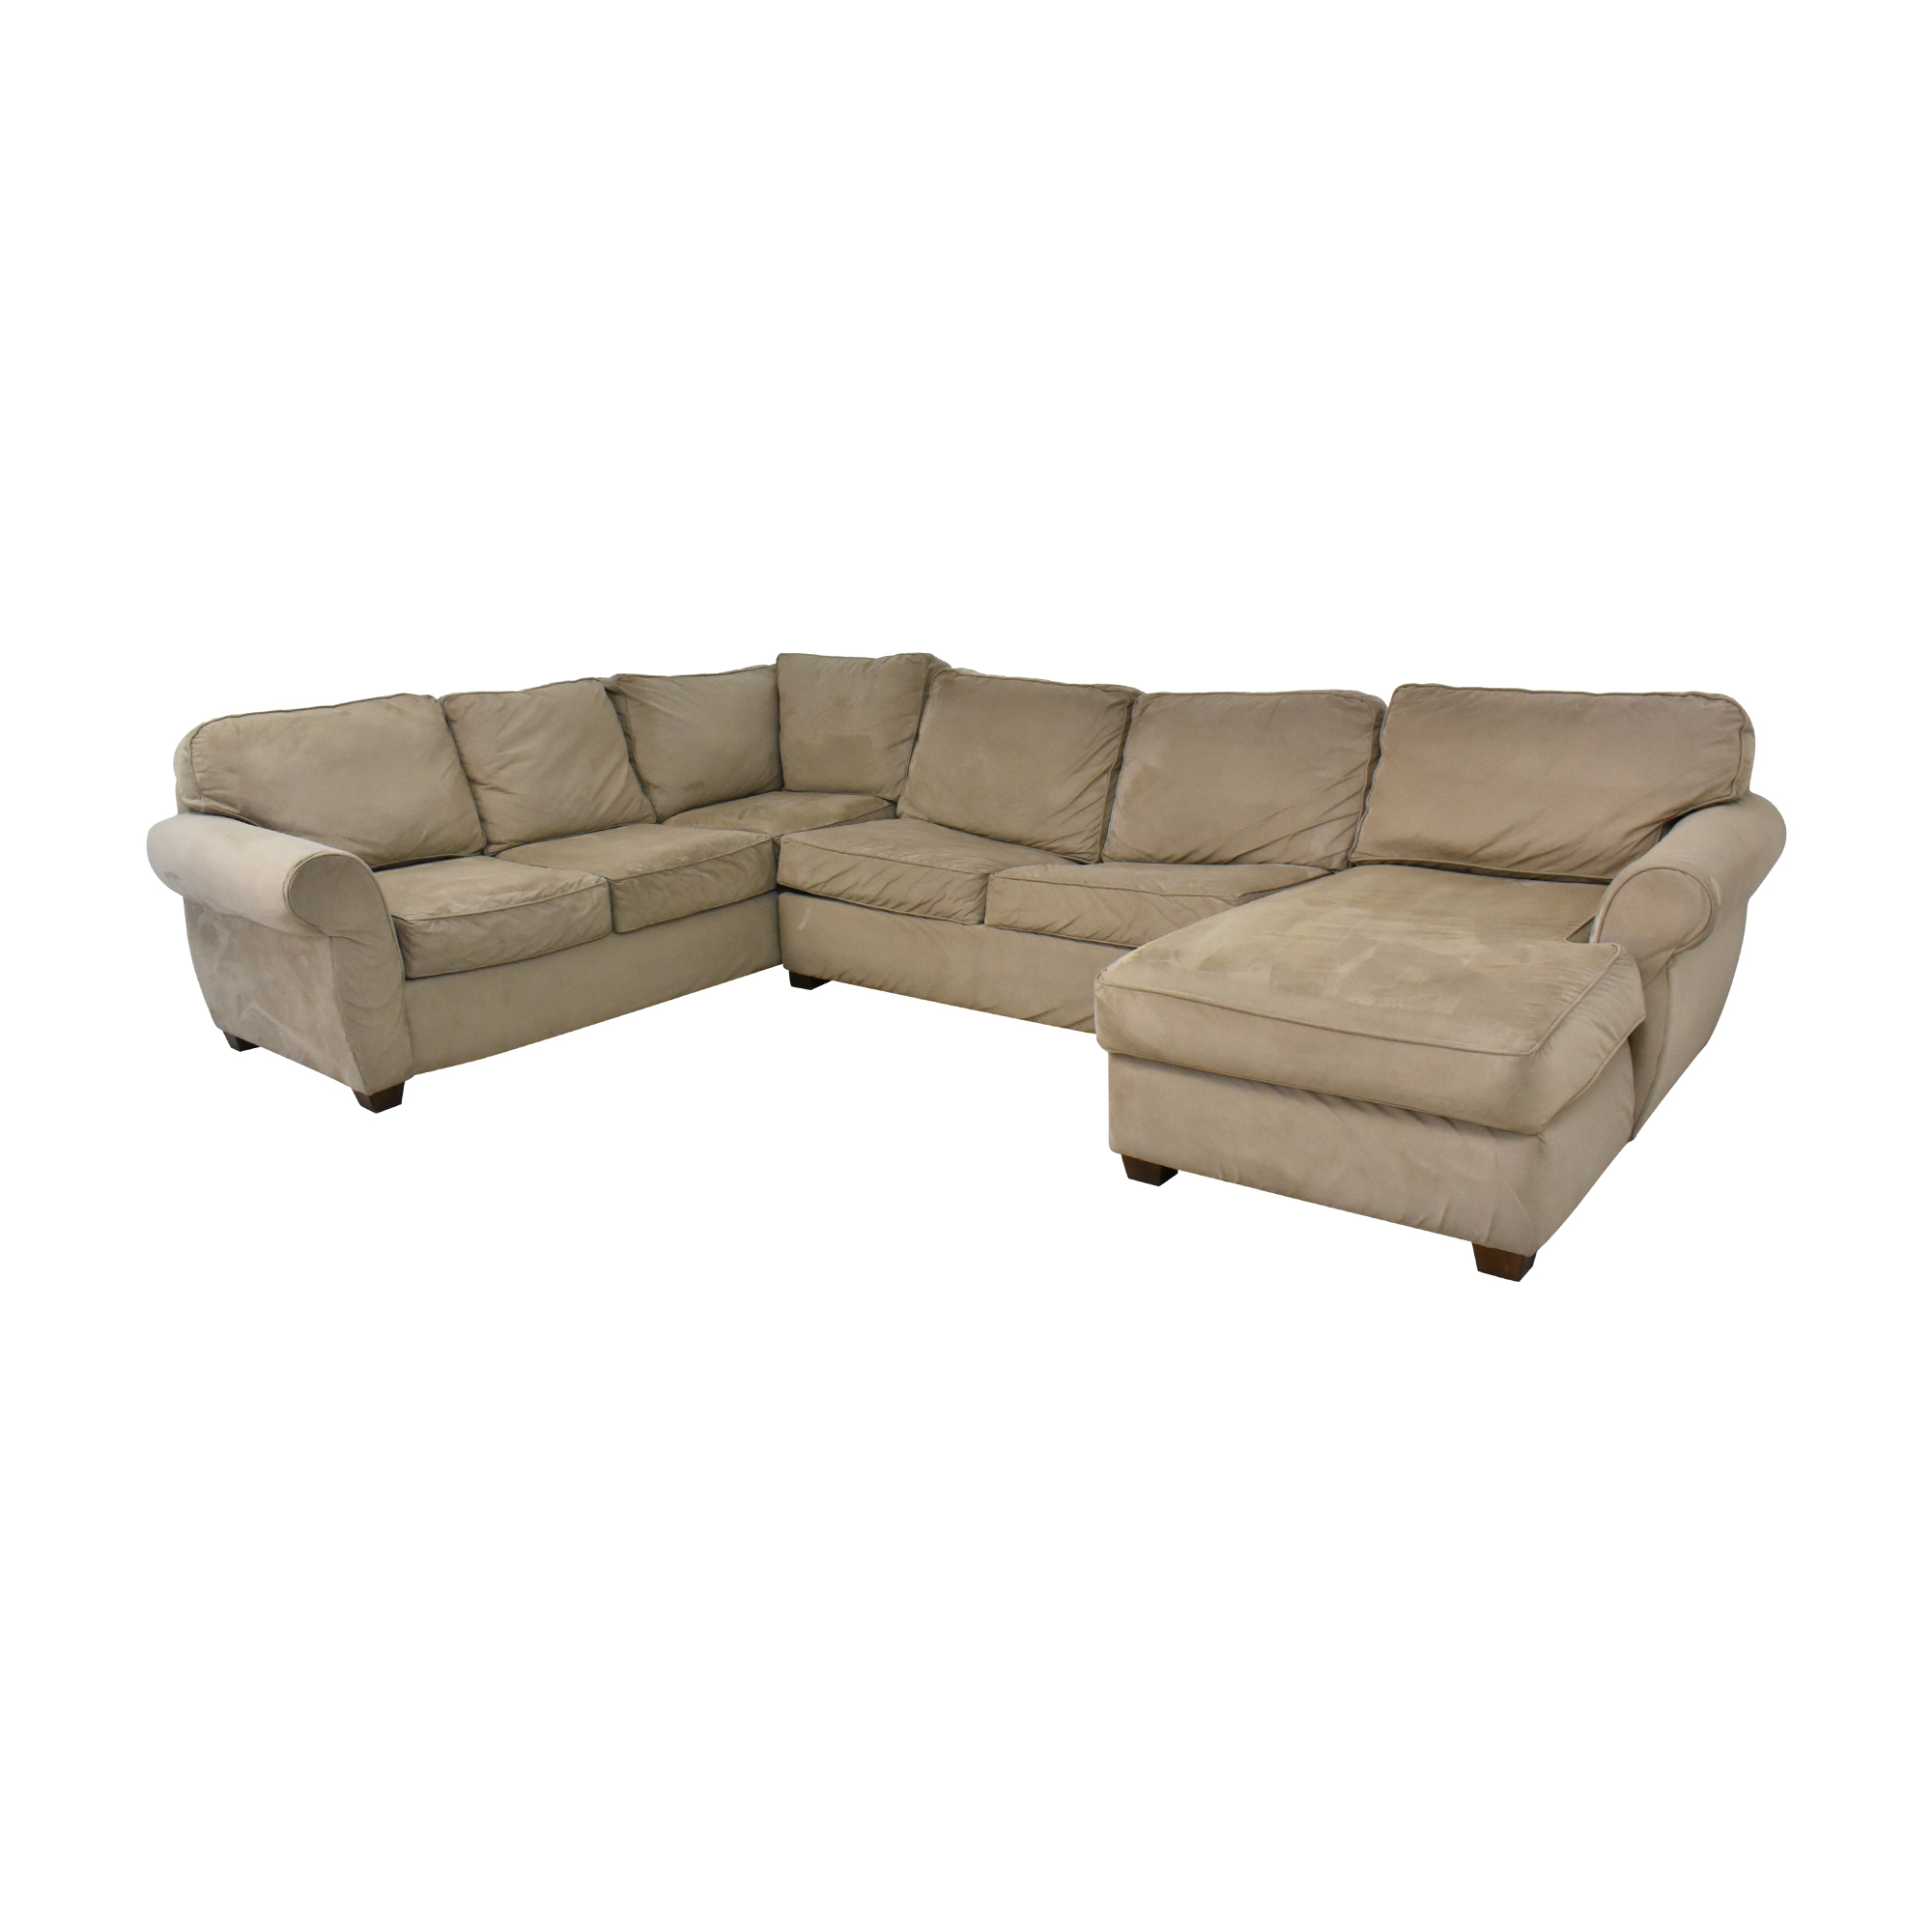 Macy's Macy's Chaise Sectional Sleeper Sofa with Ottoman dimensions